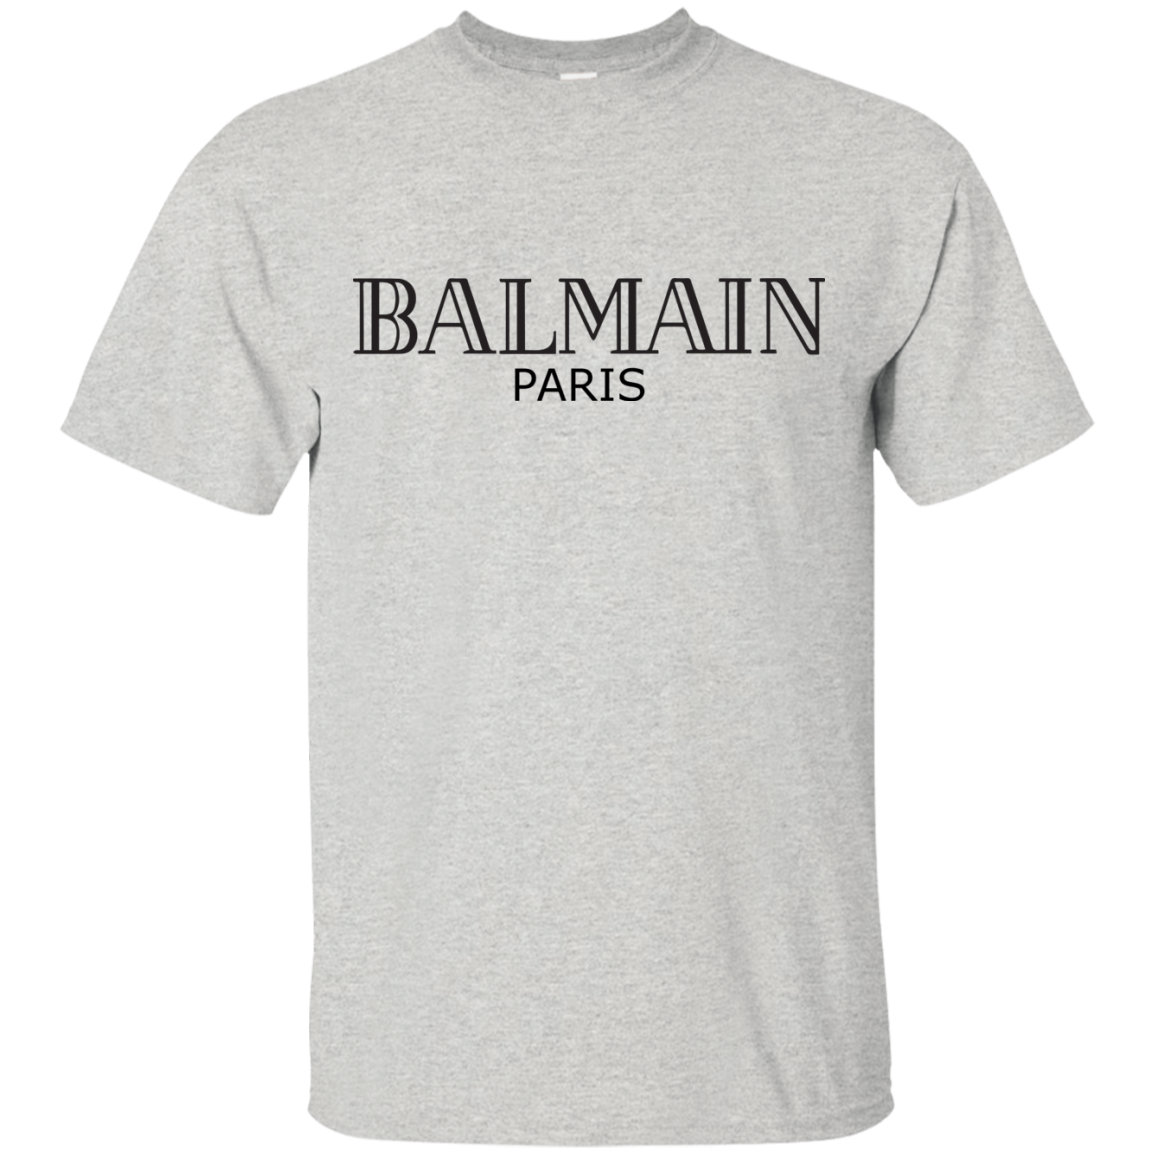 Balmain T Shirt, Hoodies, Tank Top